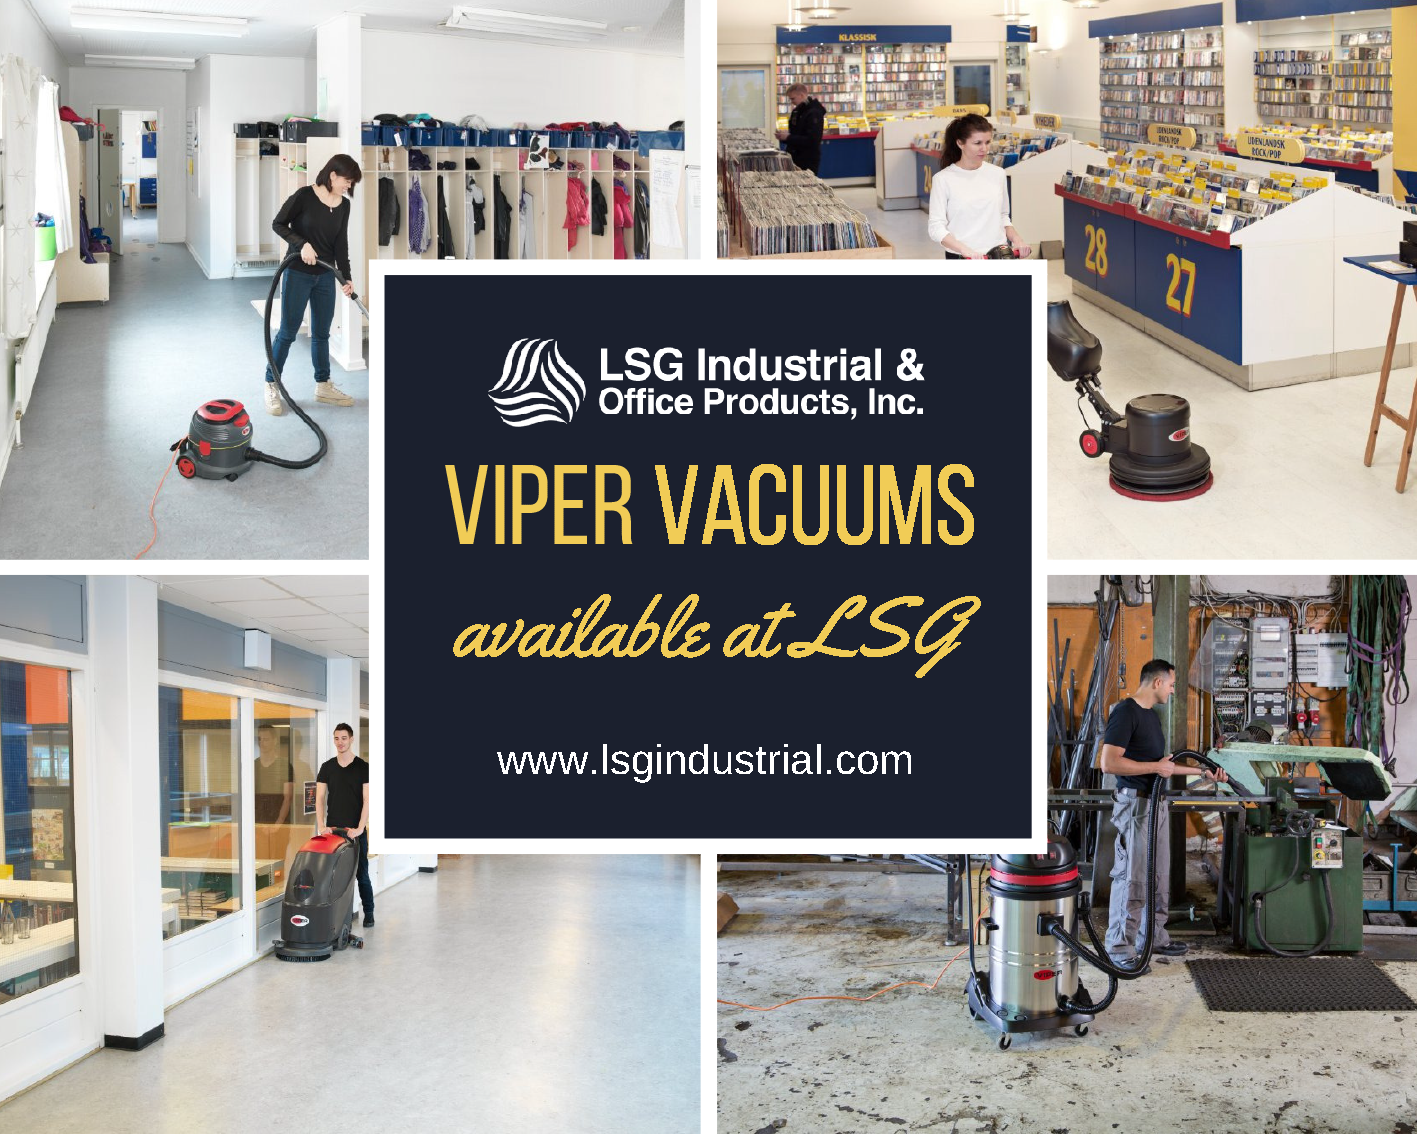 When it comes to commercial vacuum cleaners, scrubbers and